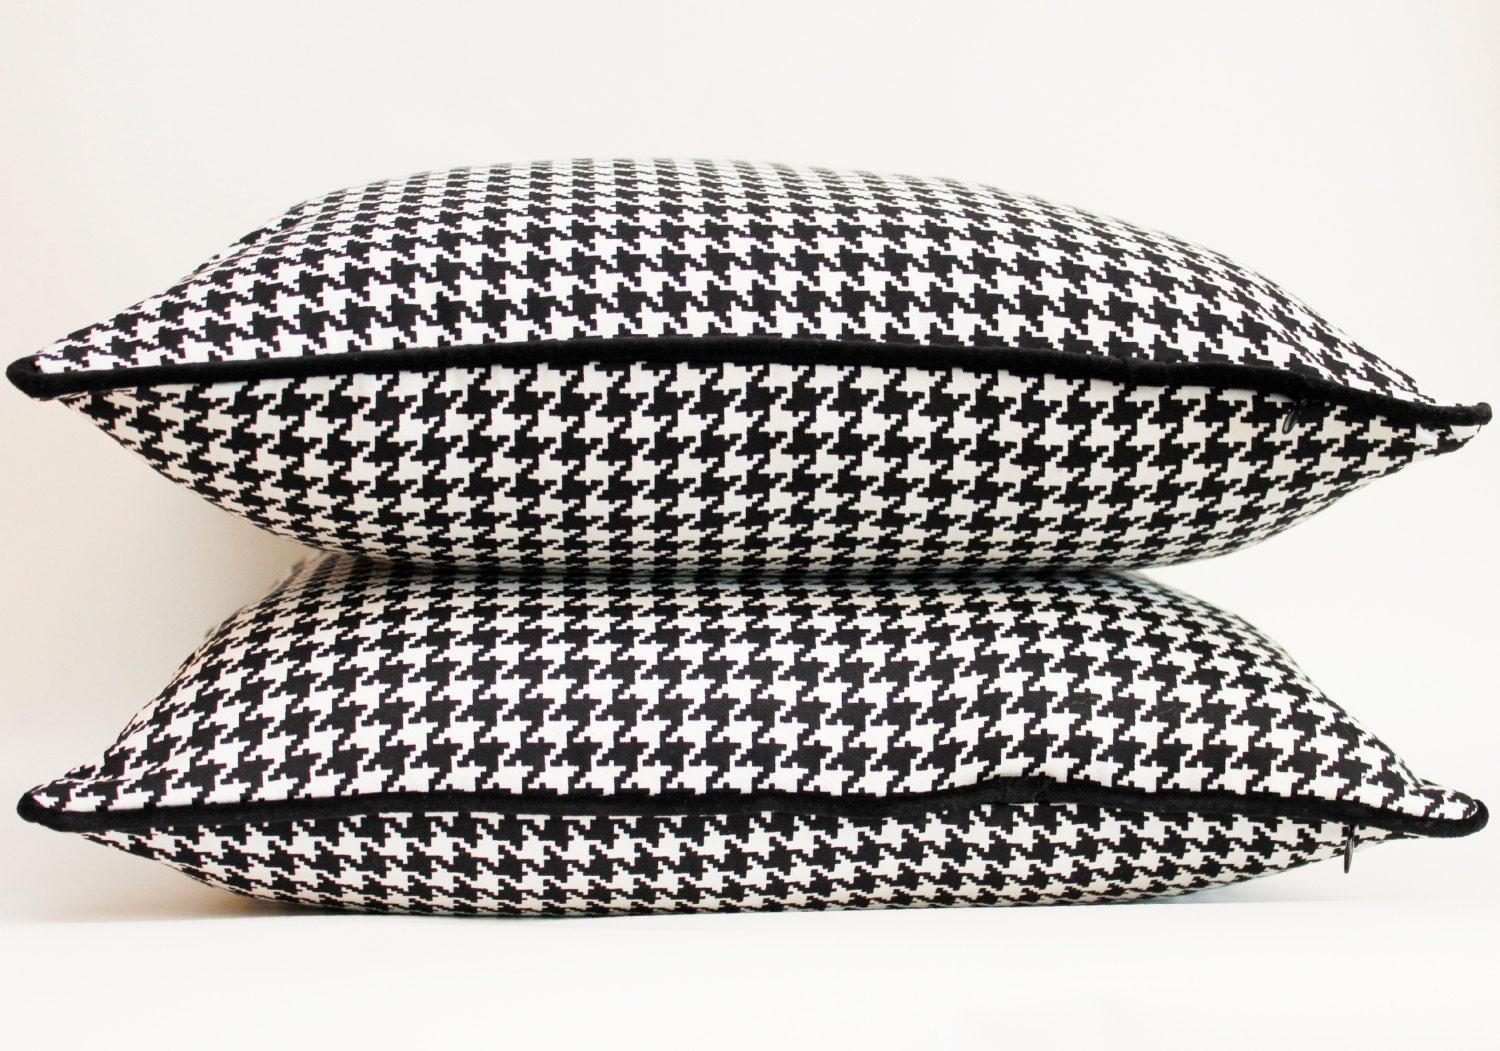 Black And White Houndstooth Throw Pillows : Throw Pillow Cover - Classic Houndstooth - 18